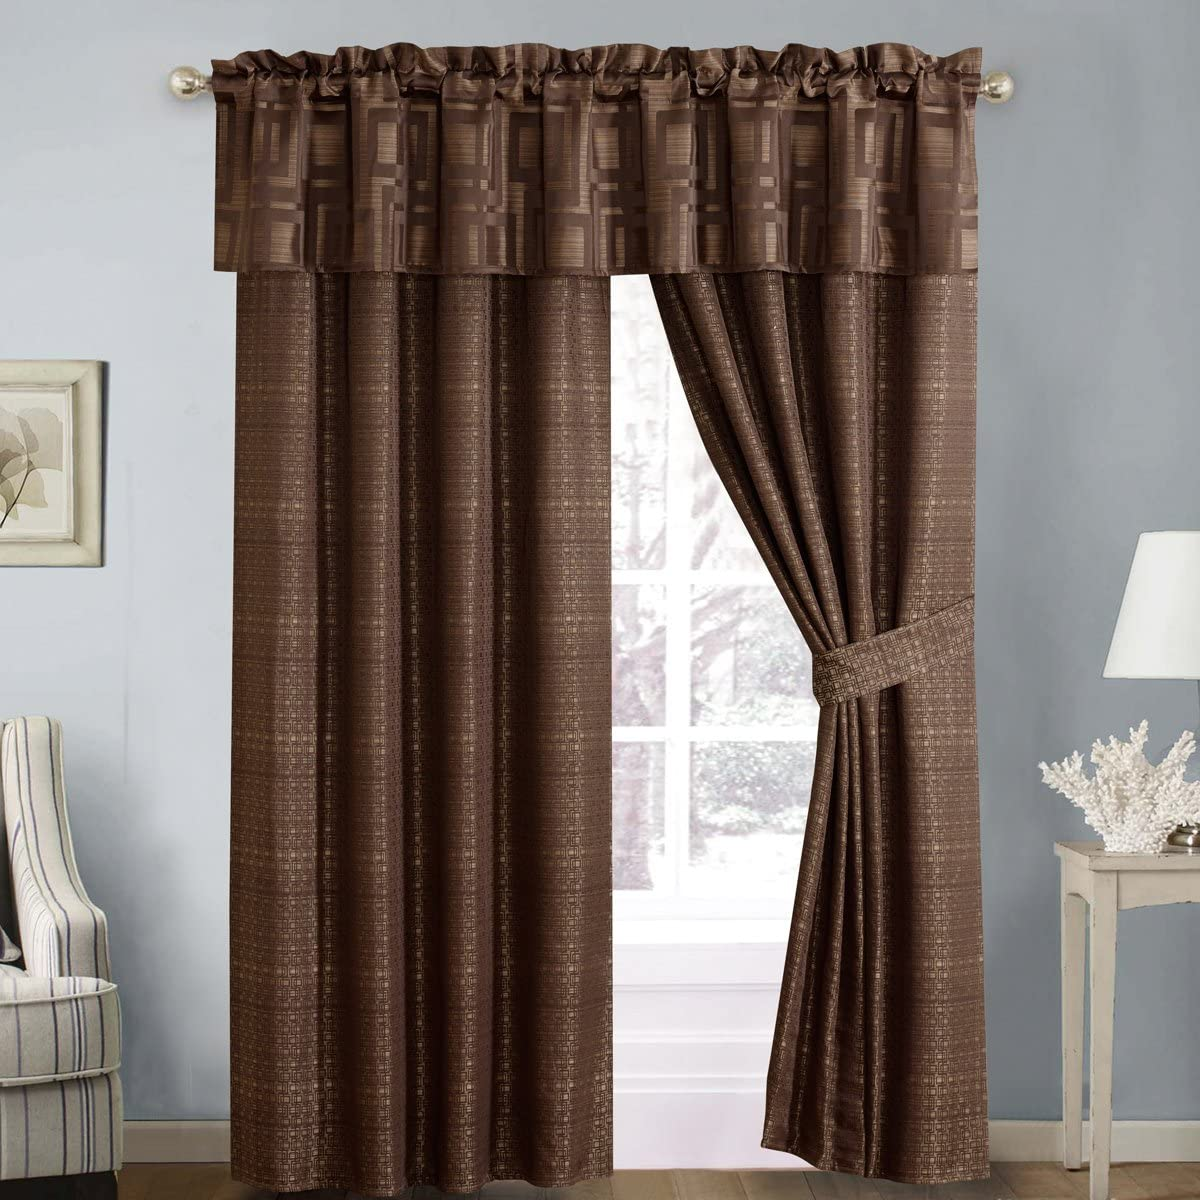 Royal Hotel Janet 5PC Jacquard Lined Window Curtain Panel Set, 2 Panels 84 inches Long, 1 Valance and 2 Tiebacks